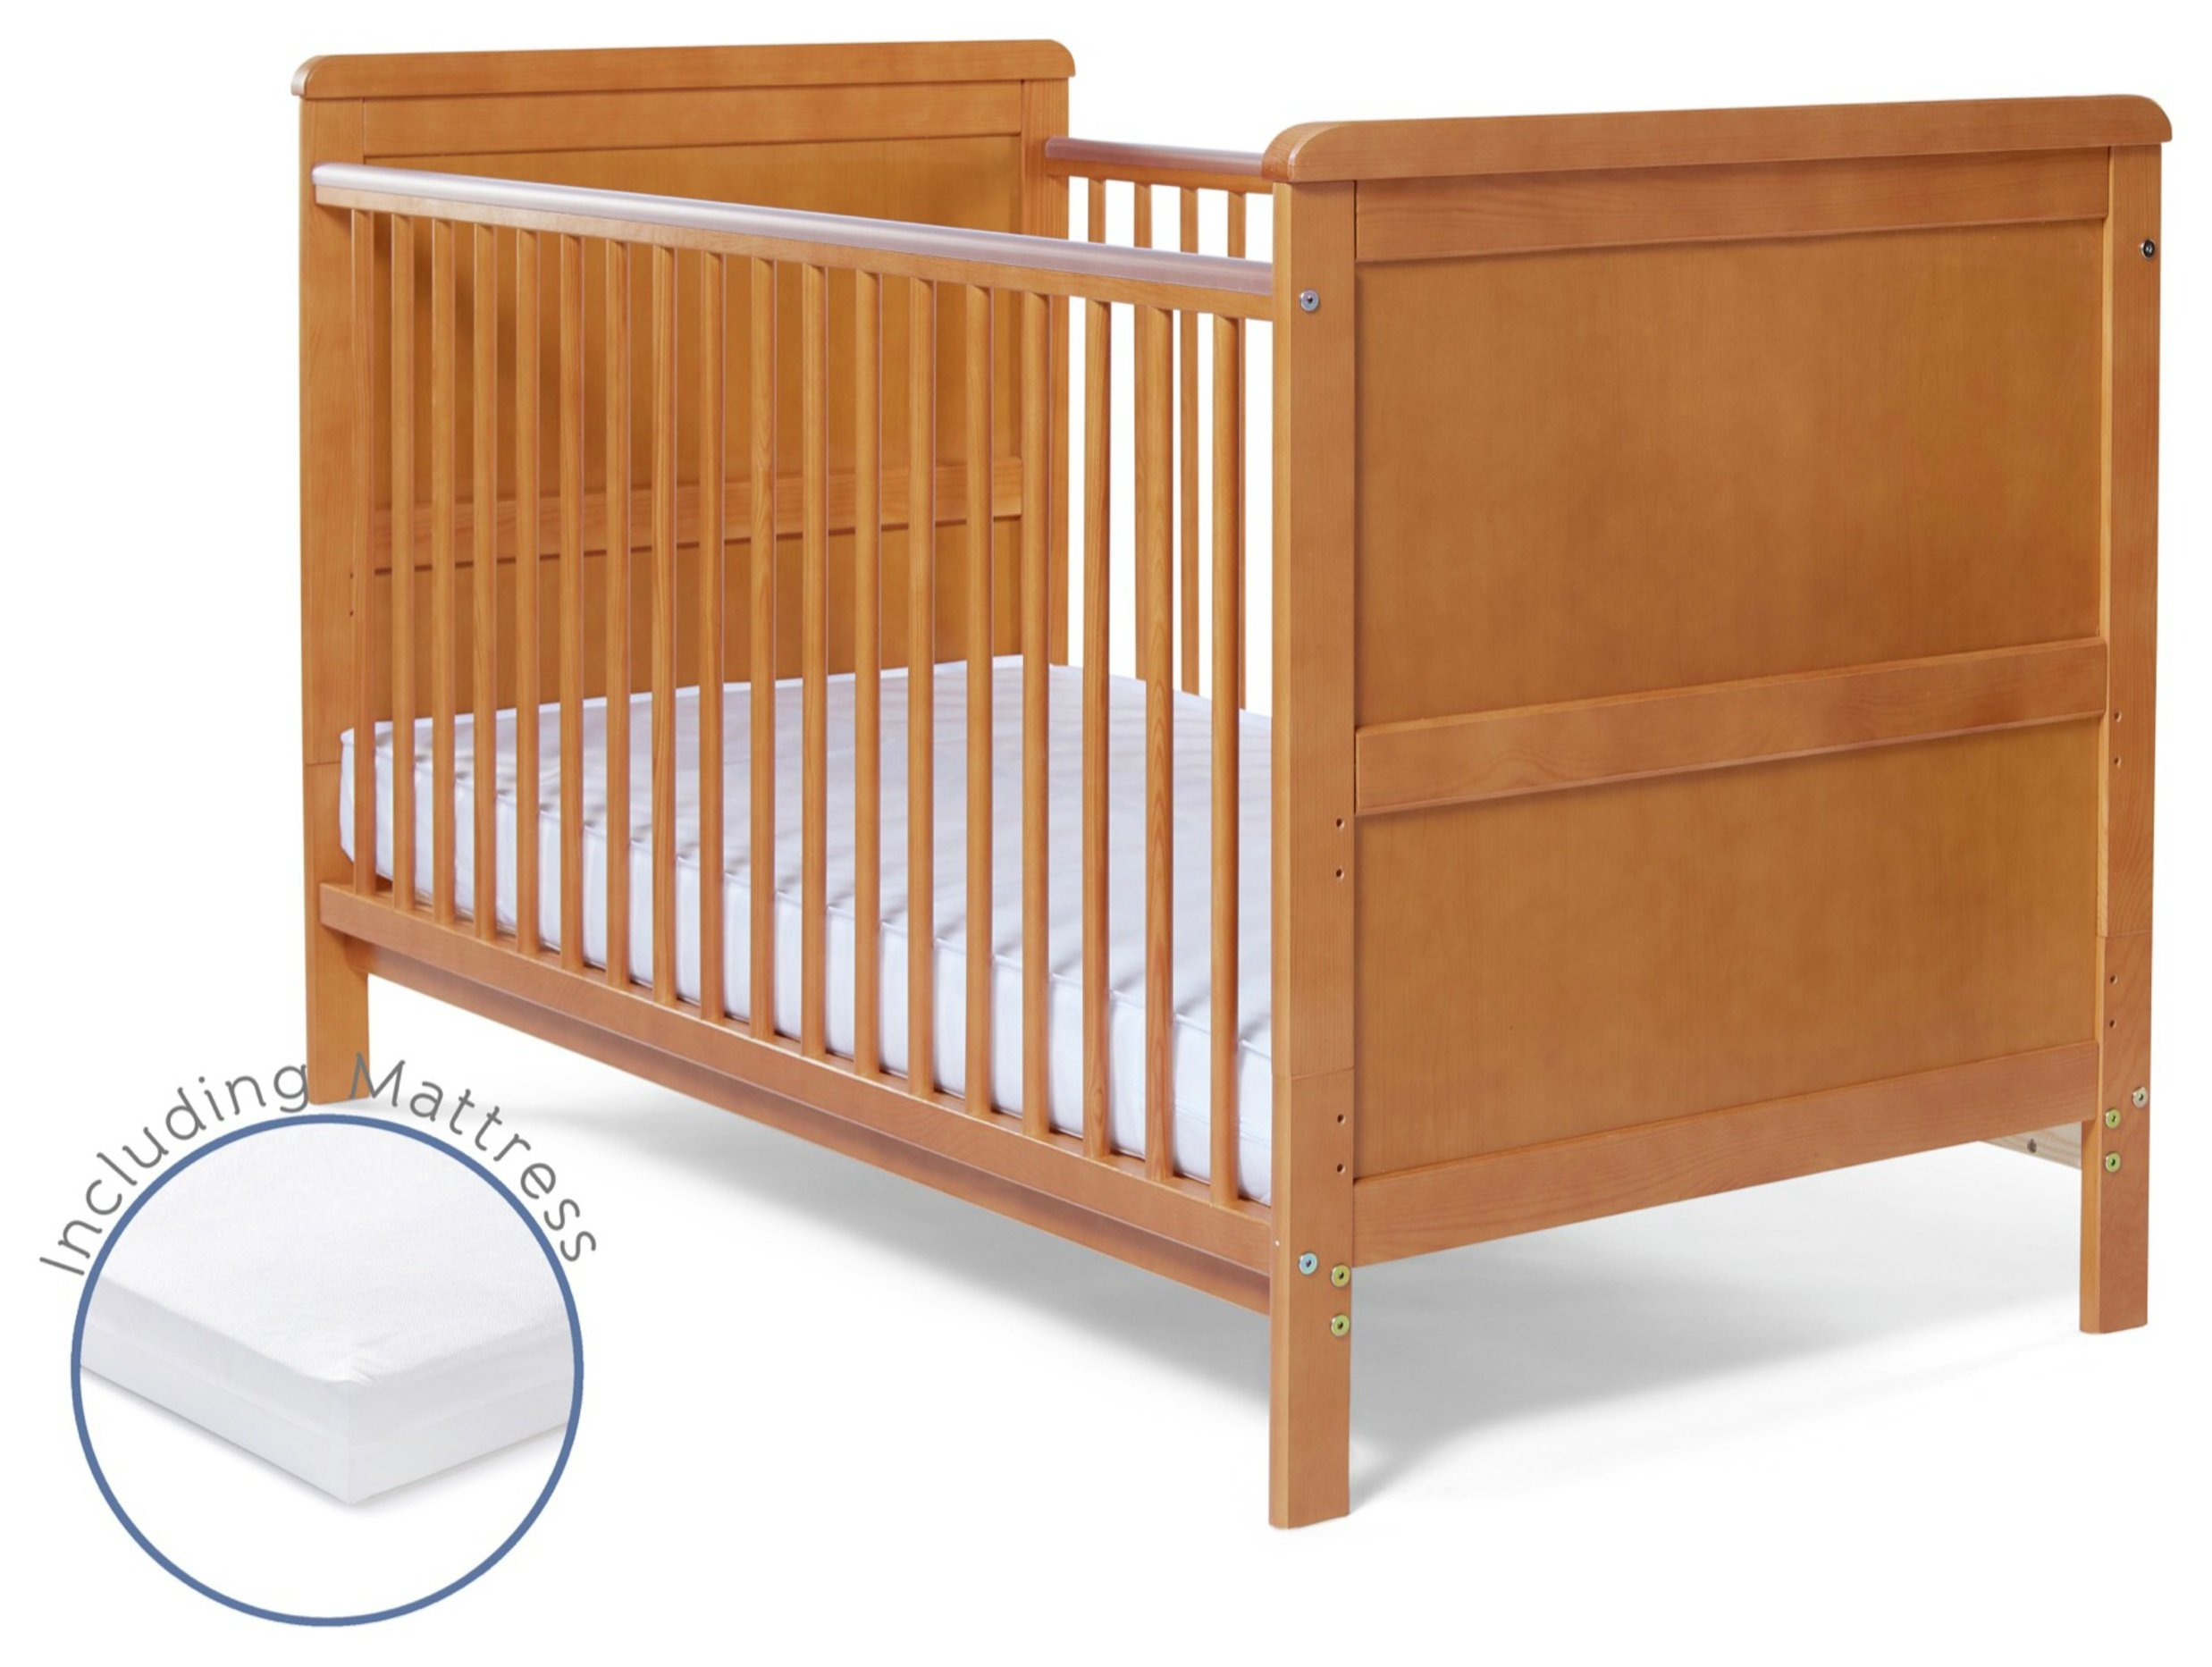 Image of Baby Elegance Alex Cot Bed with Mattress - Pine.